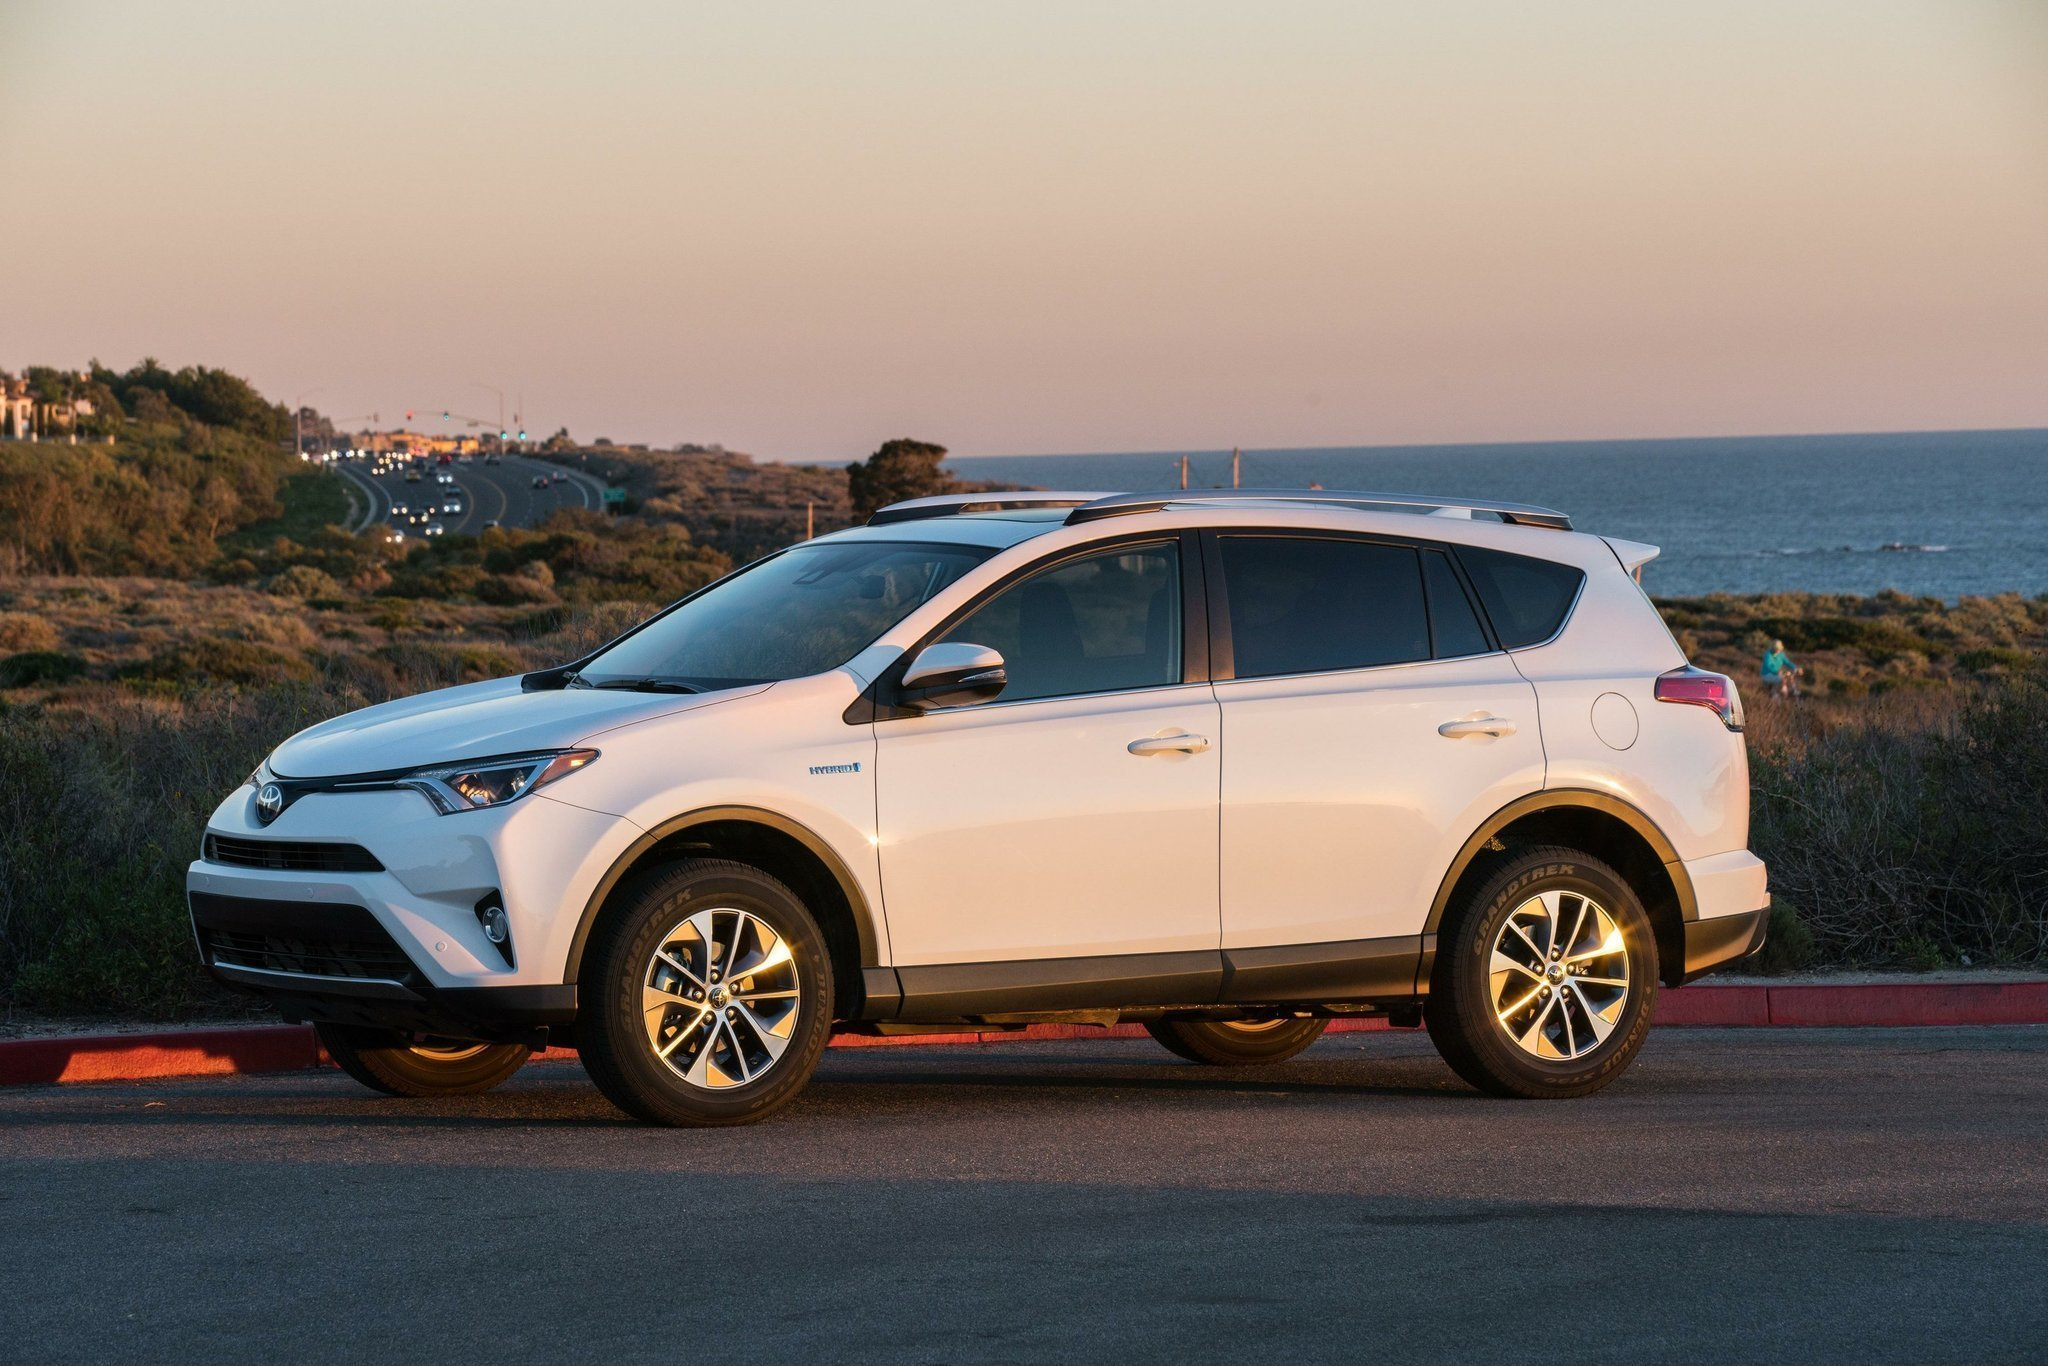 Toyota Rav4 Hybrid Makes It Easy To Be Green But What Lacks In Sophistication Overcompensates Working Cl Function And Durability